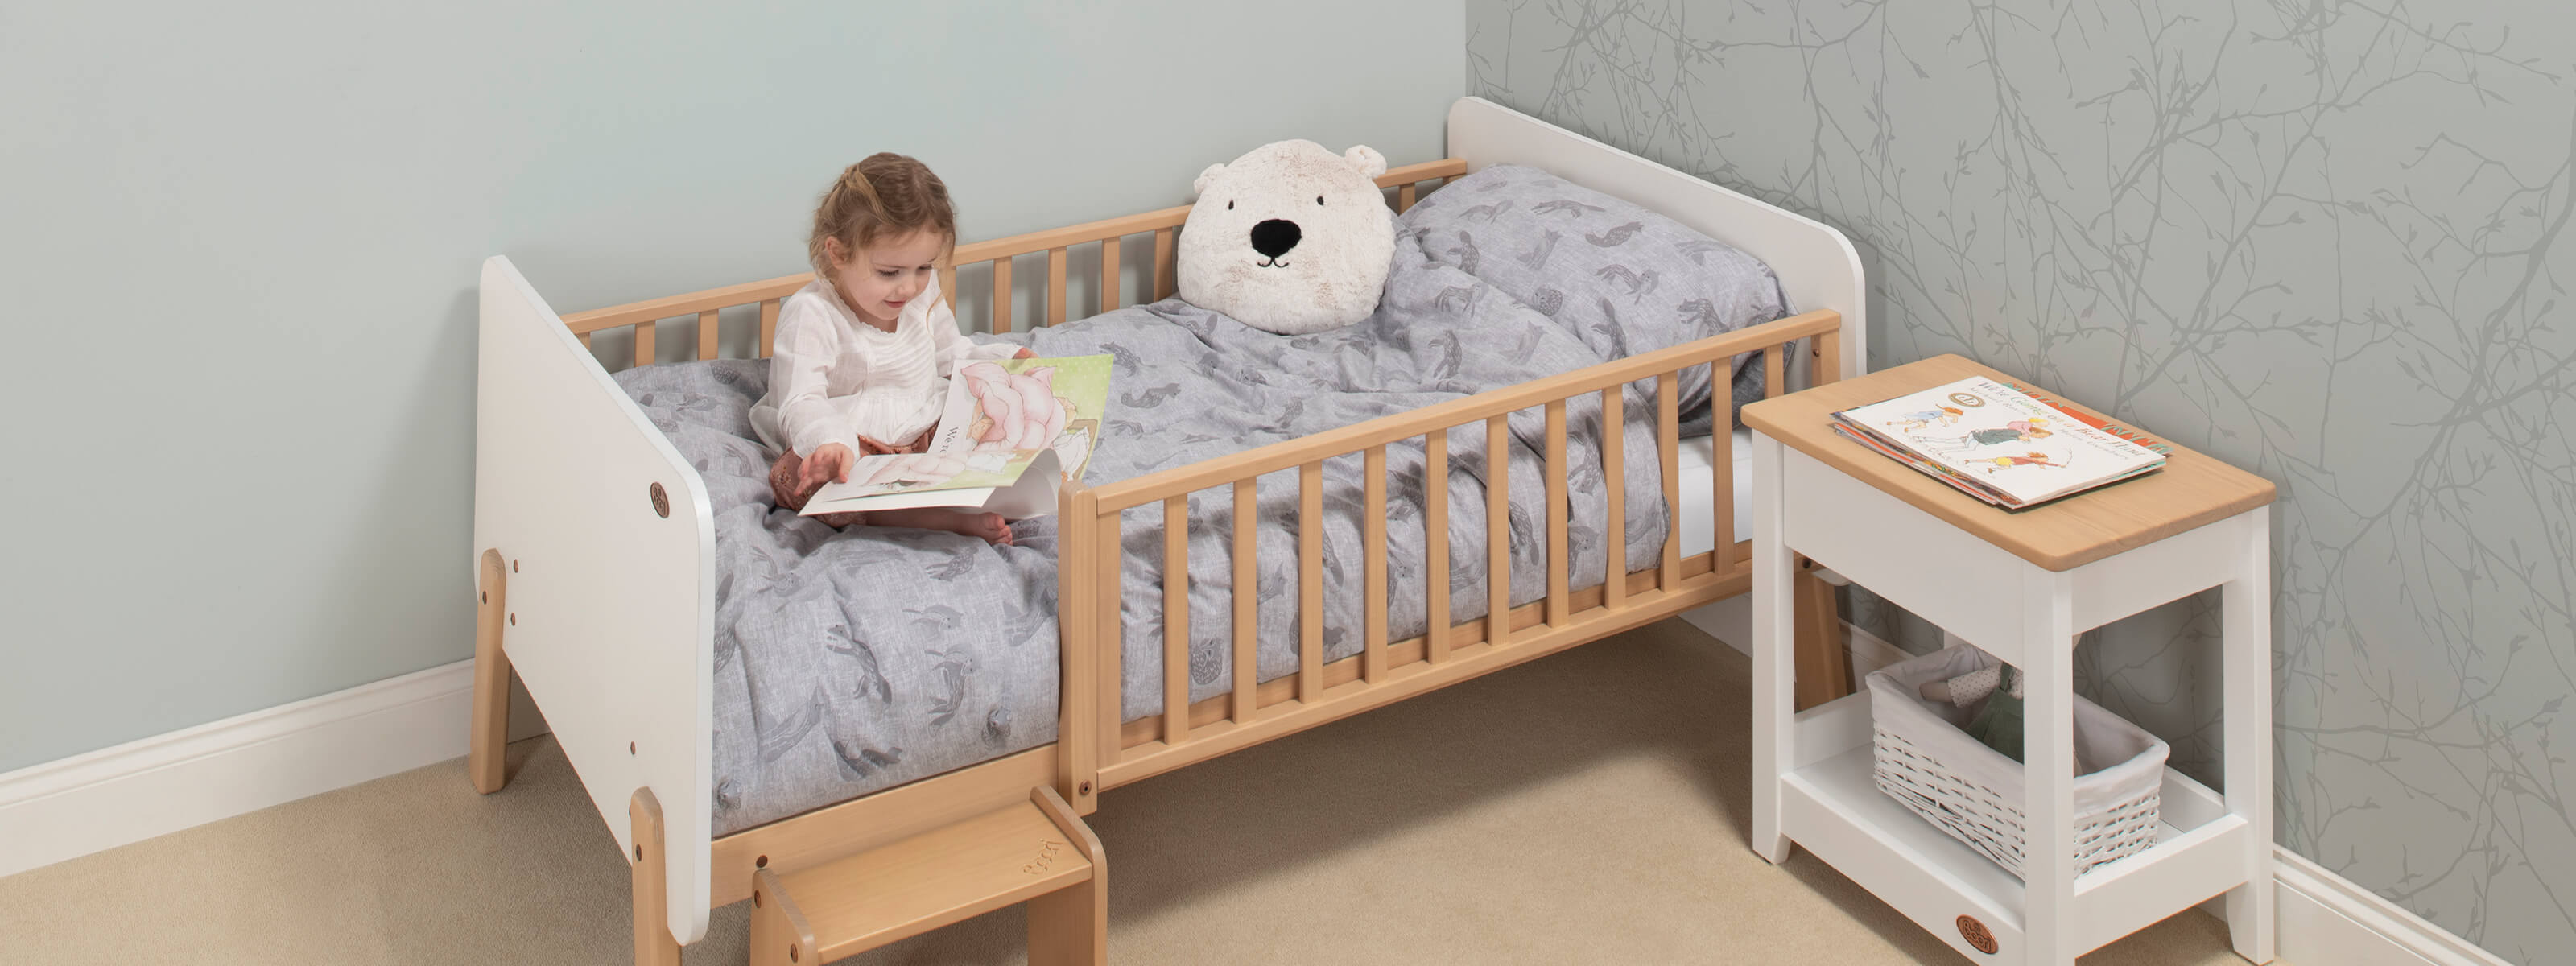 Product_Page_Lifestyles_1600_x_600_Natty_Bedside_Bed_BAAD_FORWEB__2x